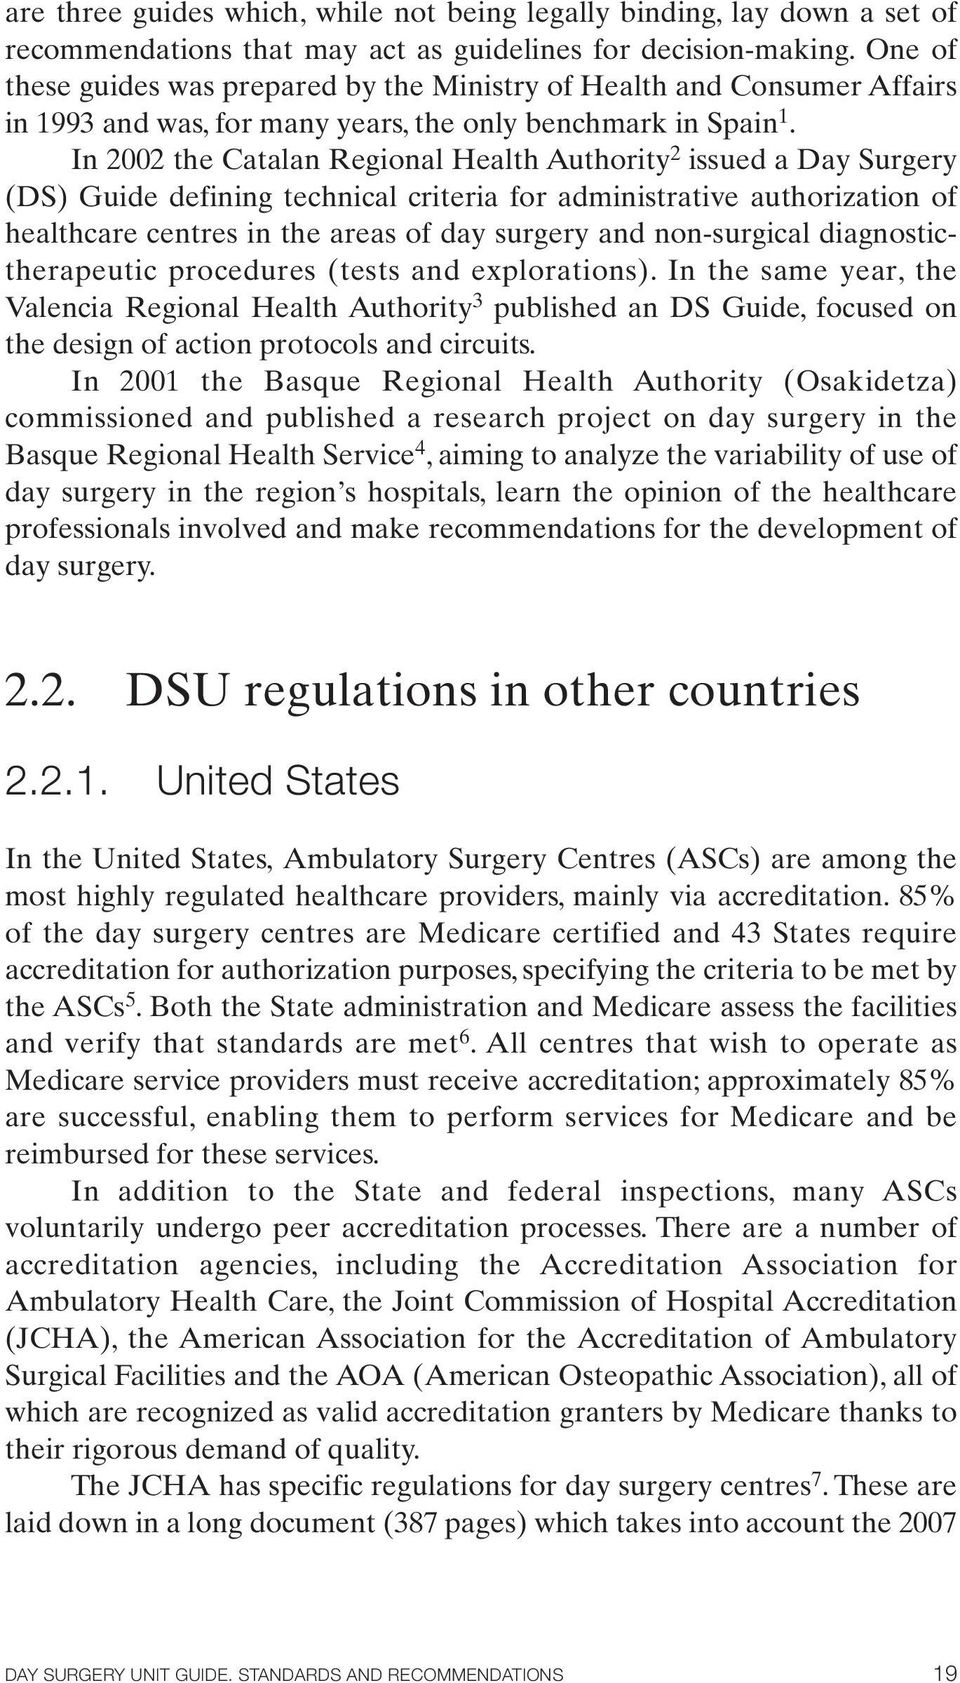 In 2002 the Catalan Regional Health Authority 2 issued a Day Surgery (DS) Guide defining technical criteria for administrative authorization of healthcare centres in the areas of day surgery and